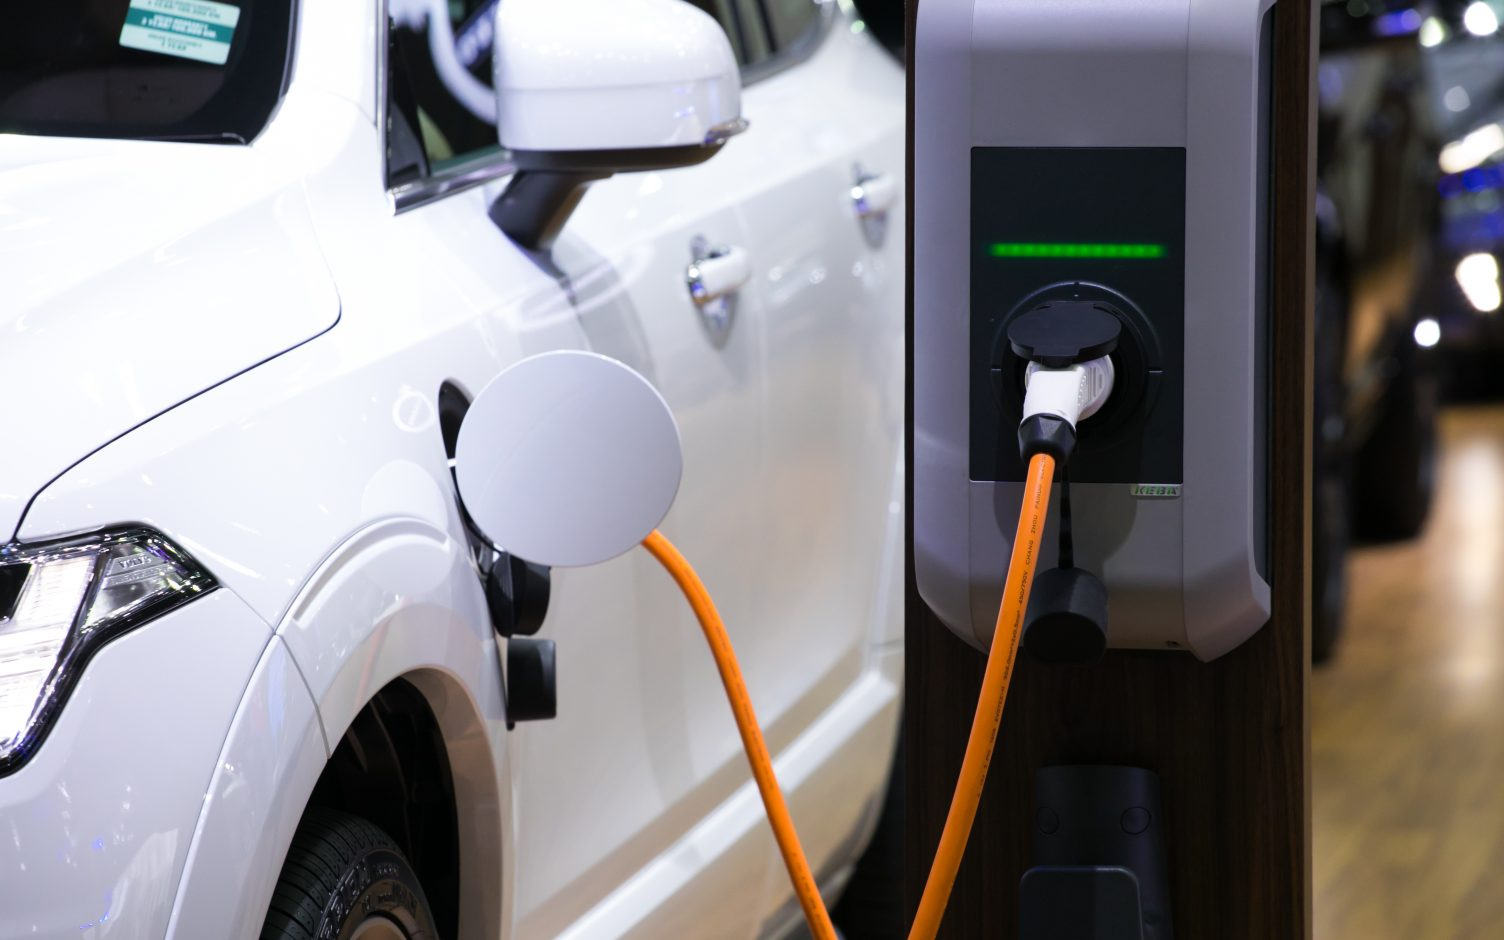 EVs could provide a key source of flexibility going forwards according to the DNO. Image: UKPN.